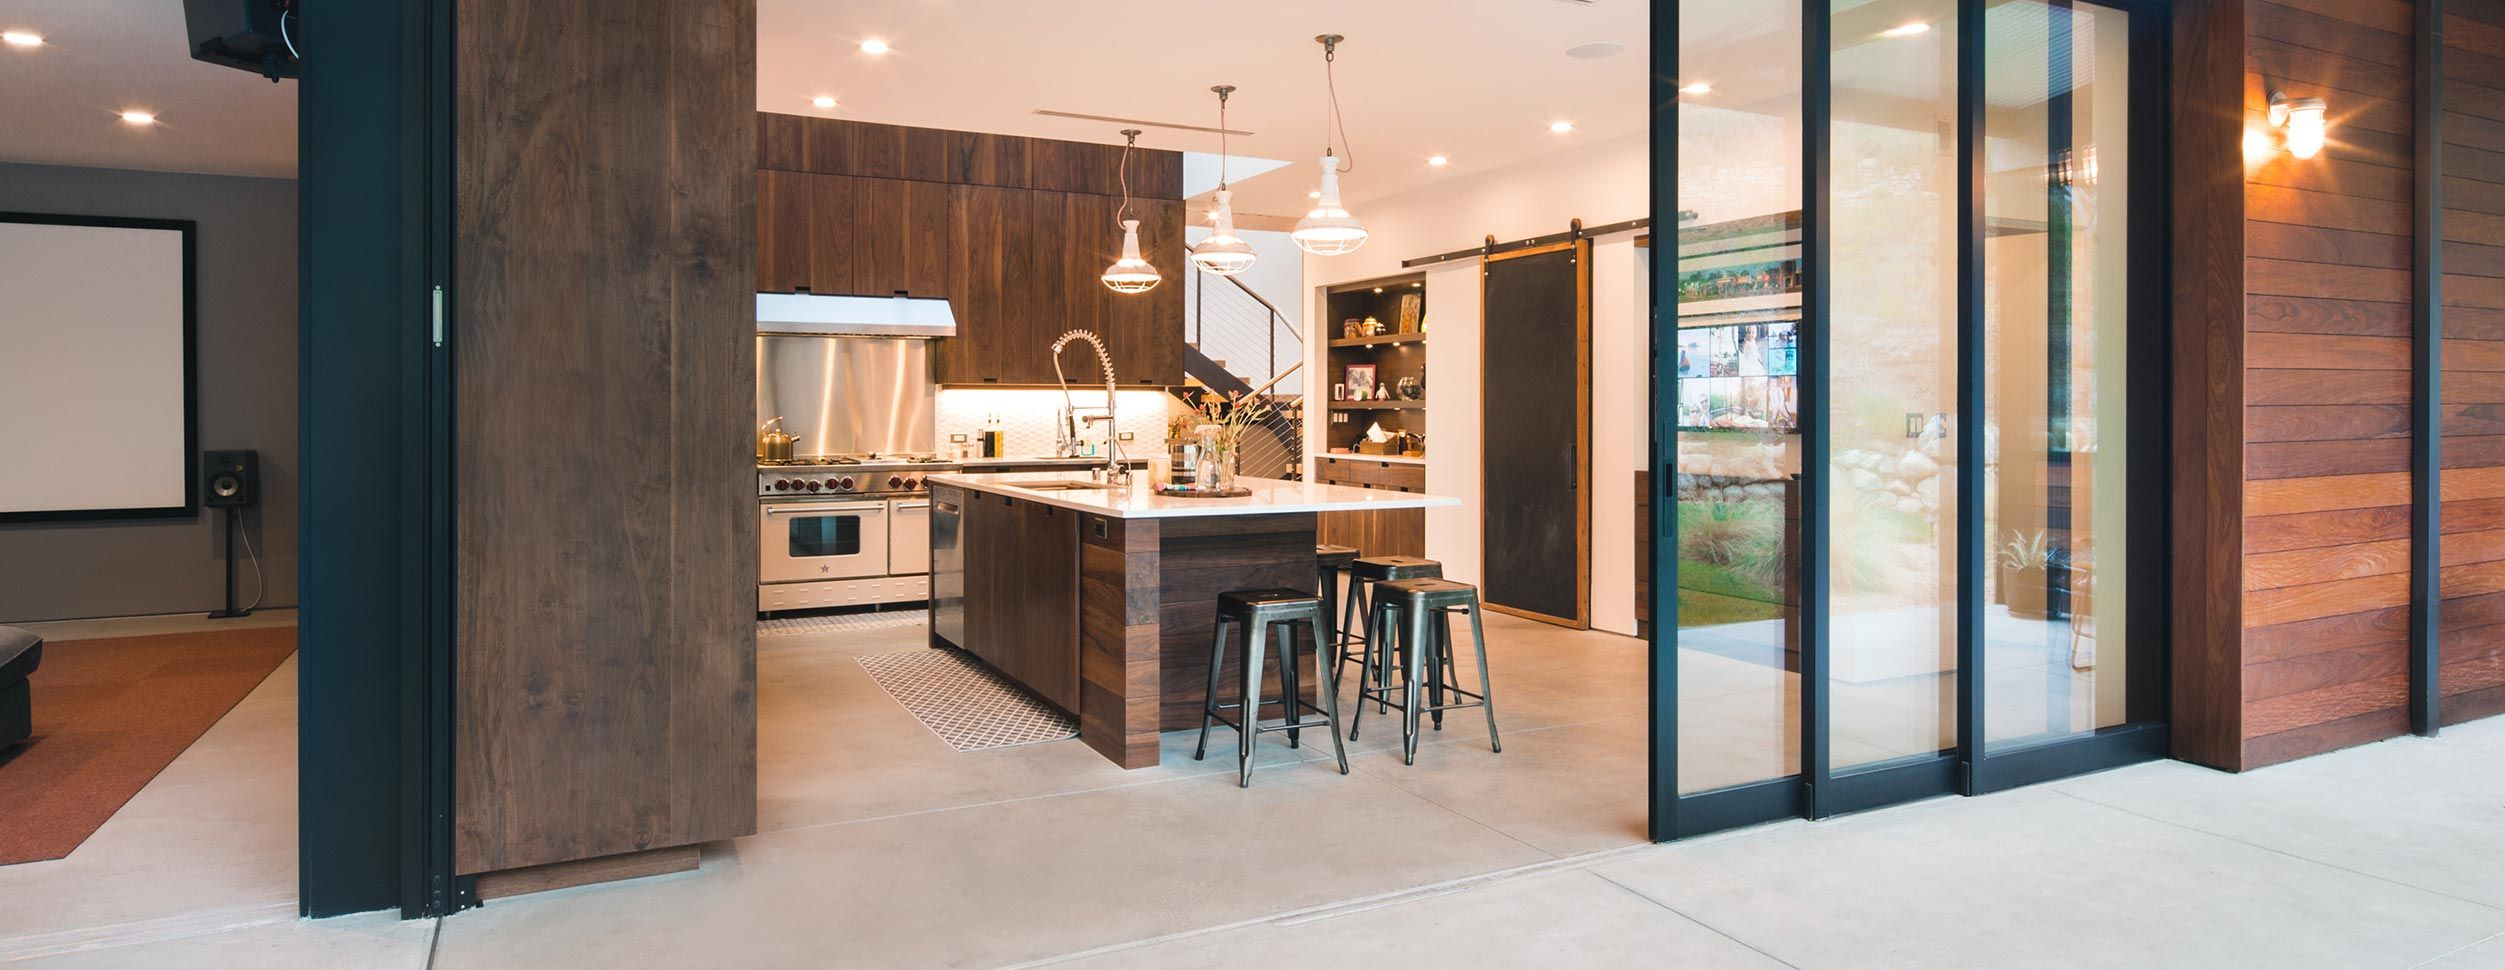 Western Windows Multi Sliding Pocket Door As Featured In This